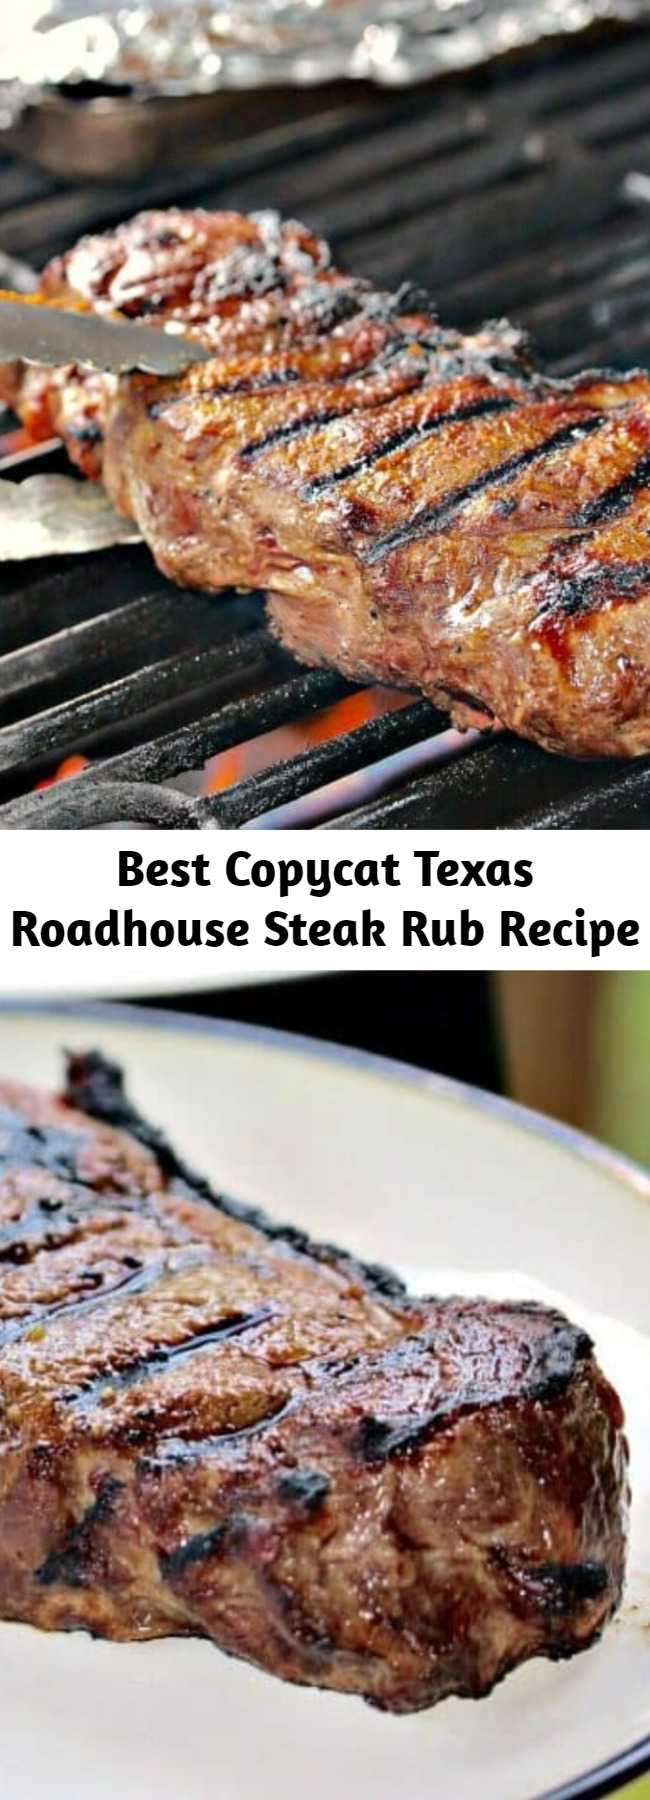 Best Copycat Texas Roadhouse Steak Rub Recipe - Just a few simple seasonings is all you need to make the best dry steak rub recipe to compliment the amazing flavors in your chicken or steak, and tastes just like the Texas Roadhouse restaurant!